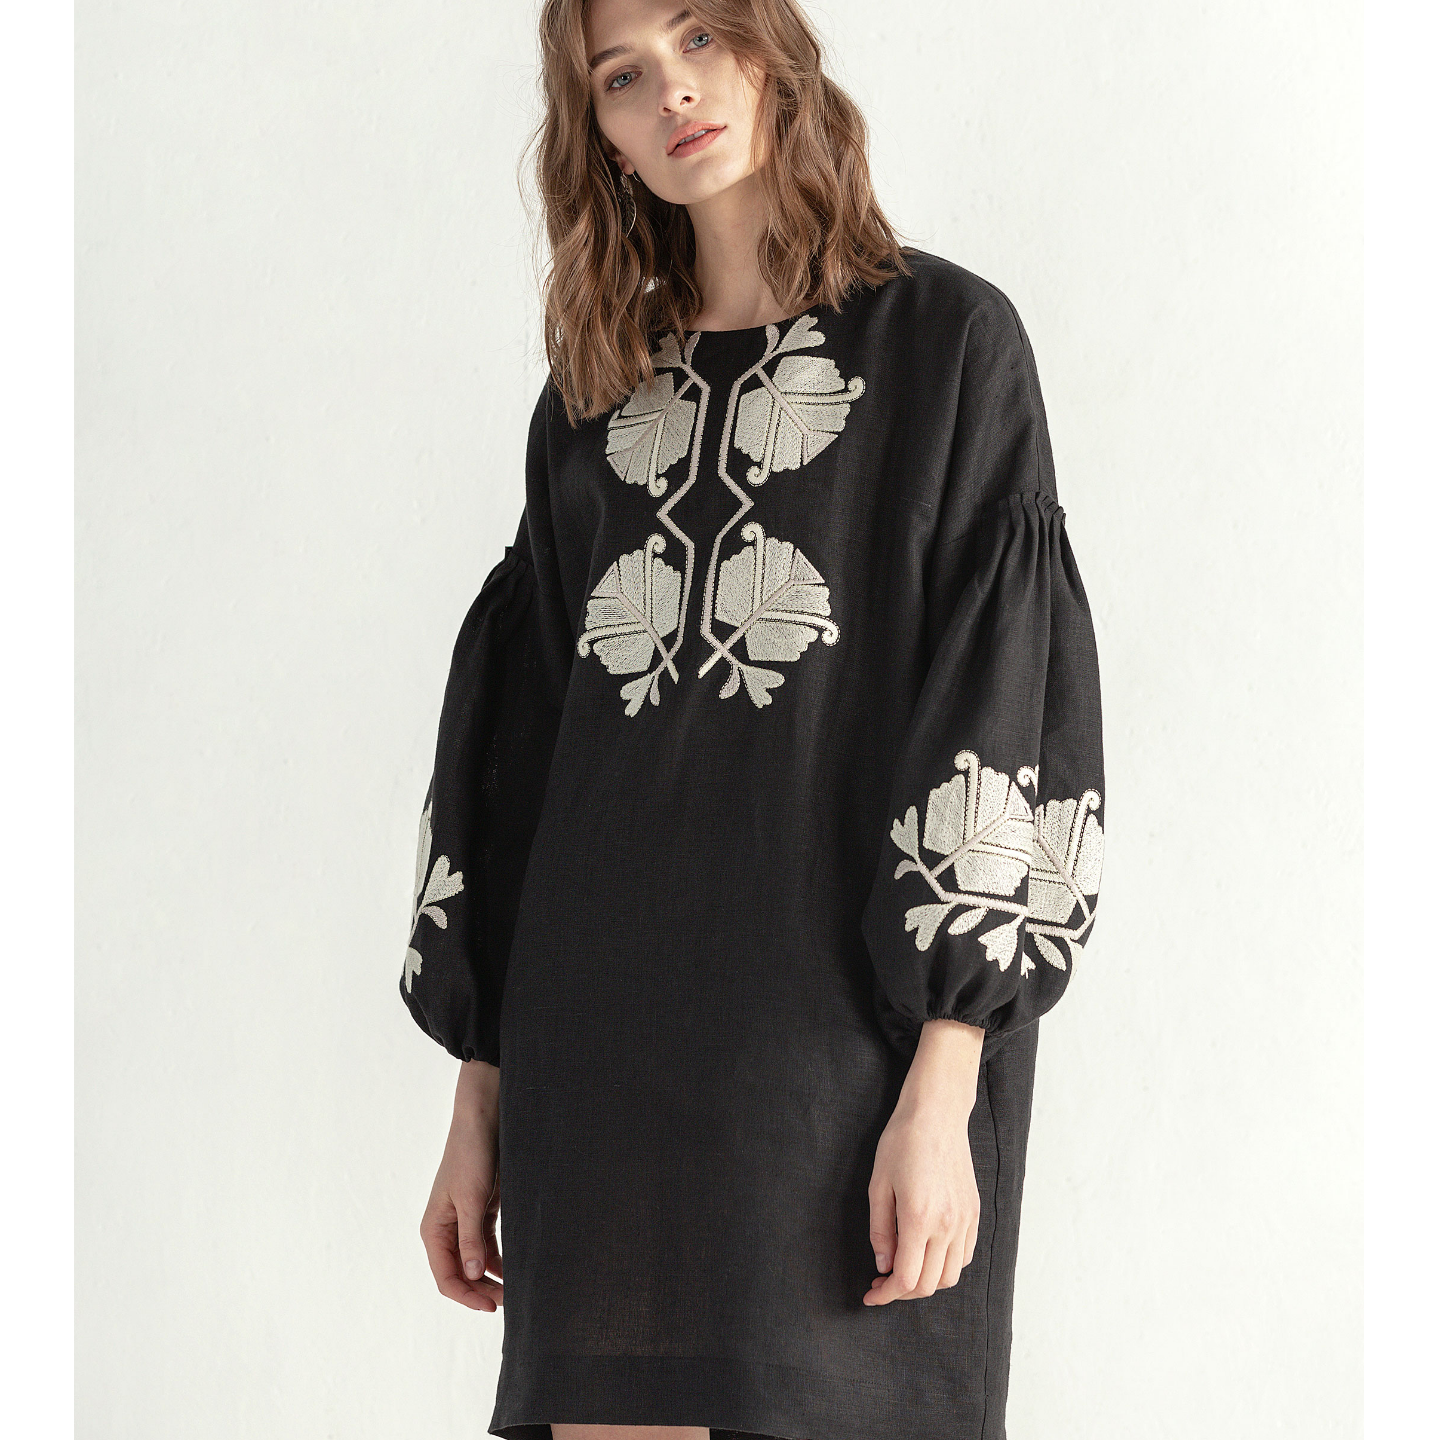 """Black linen dress with floral embroidery """"Muse"""" - NEW"""